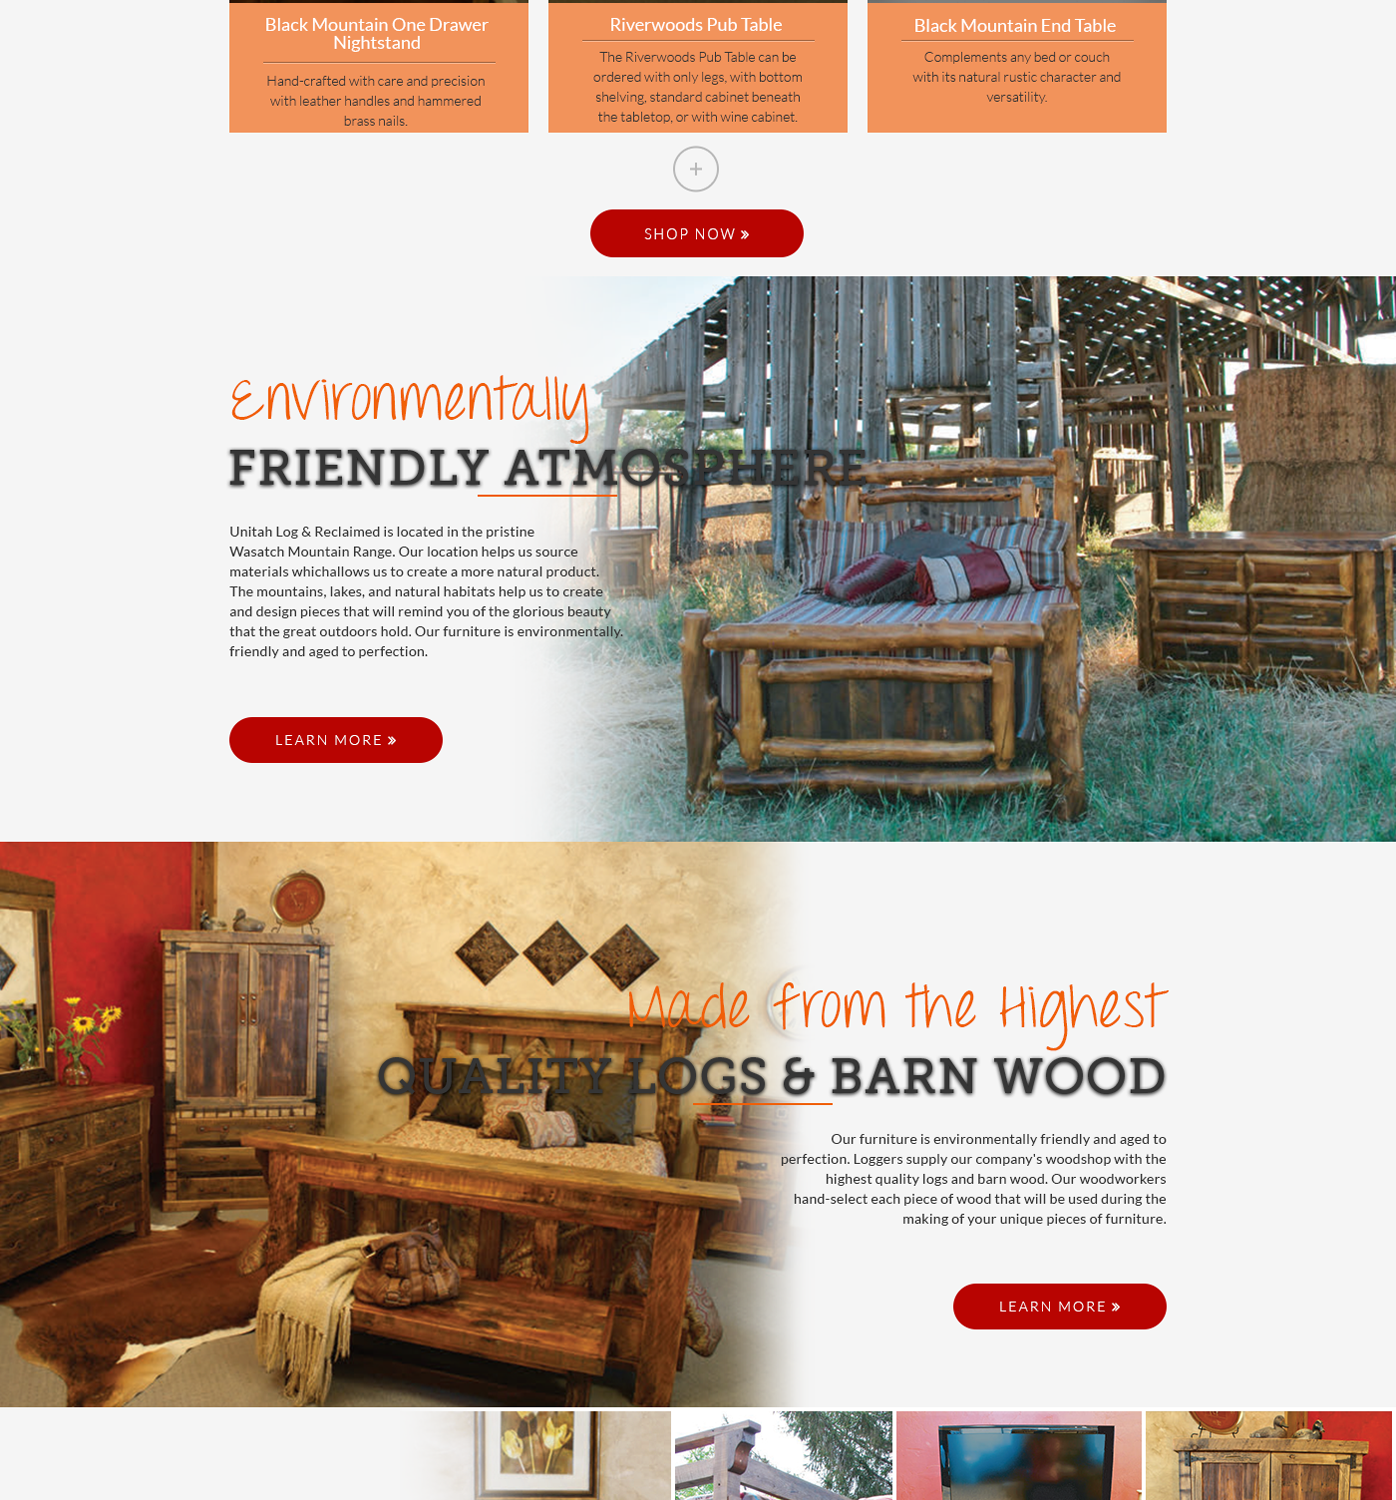 Bold Serious Furniture Store Web Design For A Company By Kodjoismaila Design 10410573